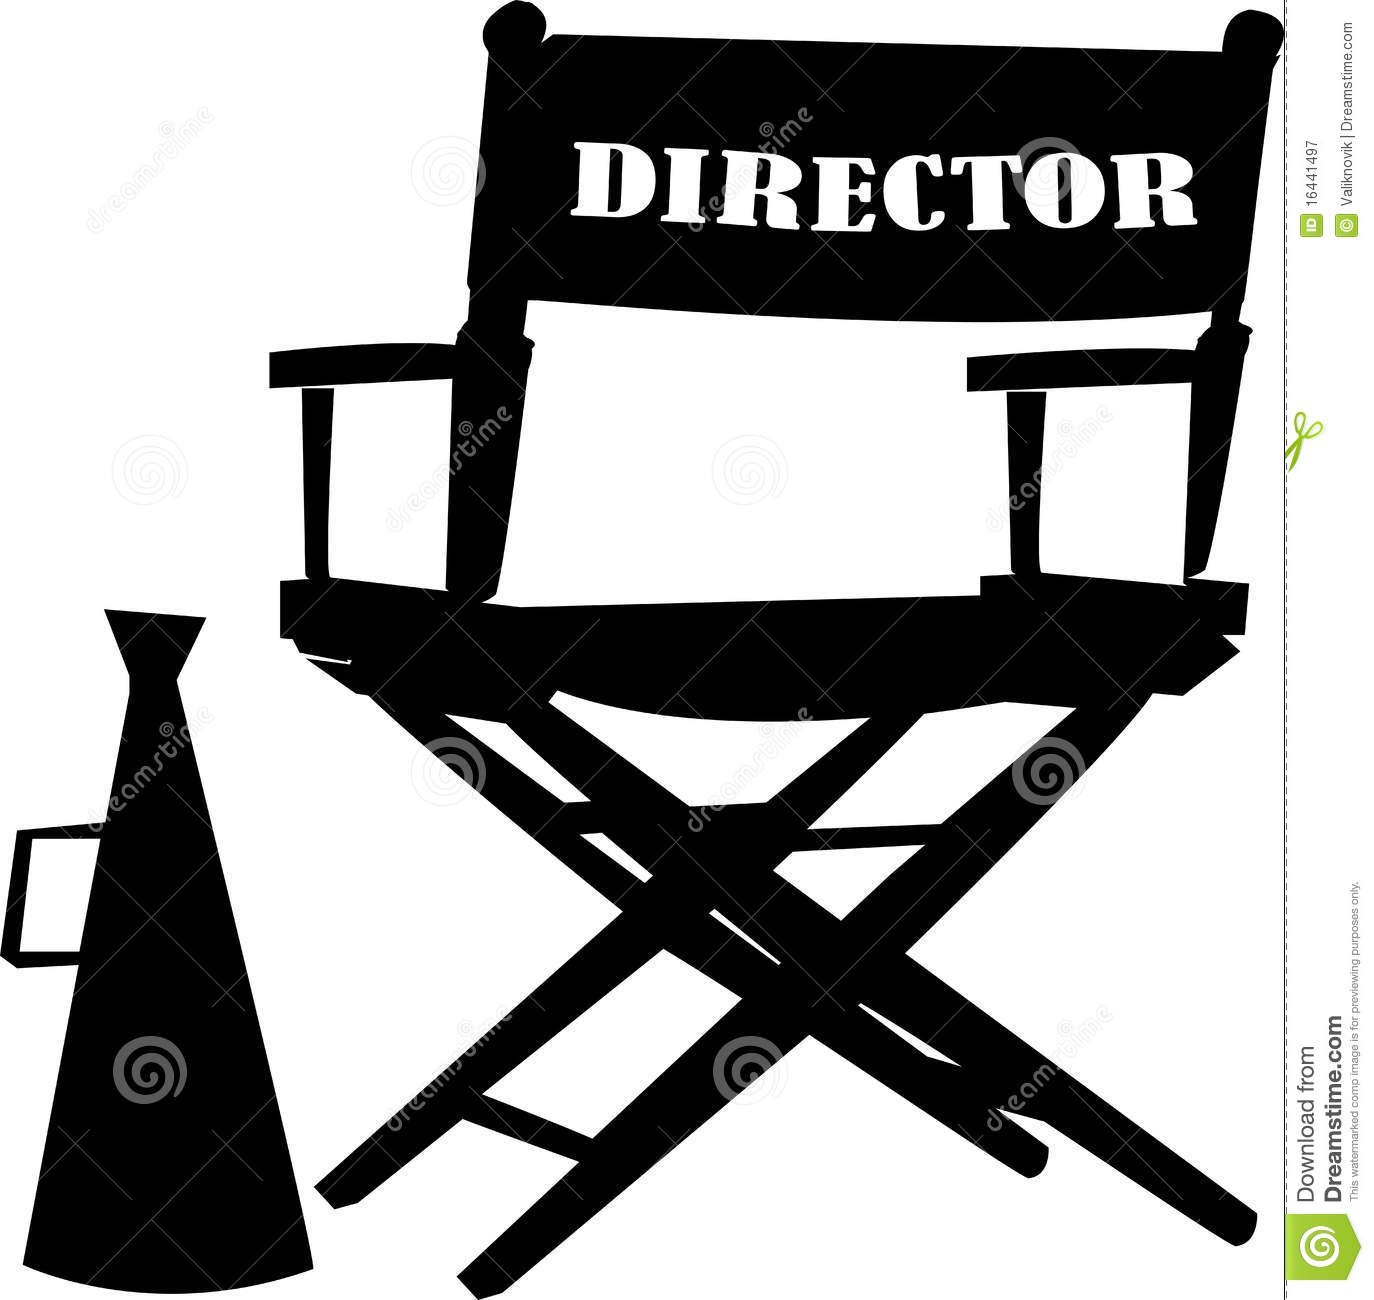 Clip Art Images of a Director S Chair